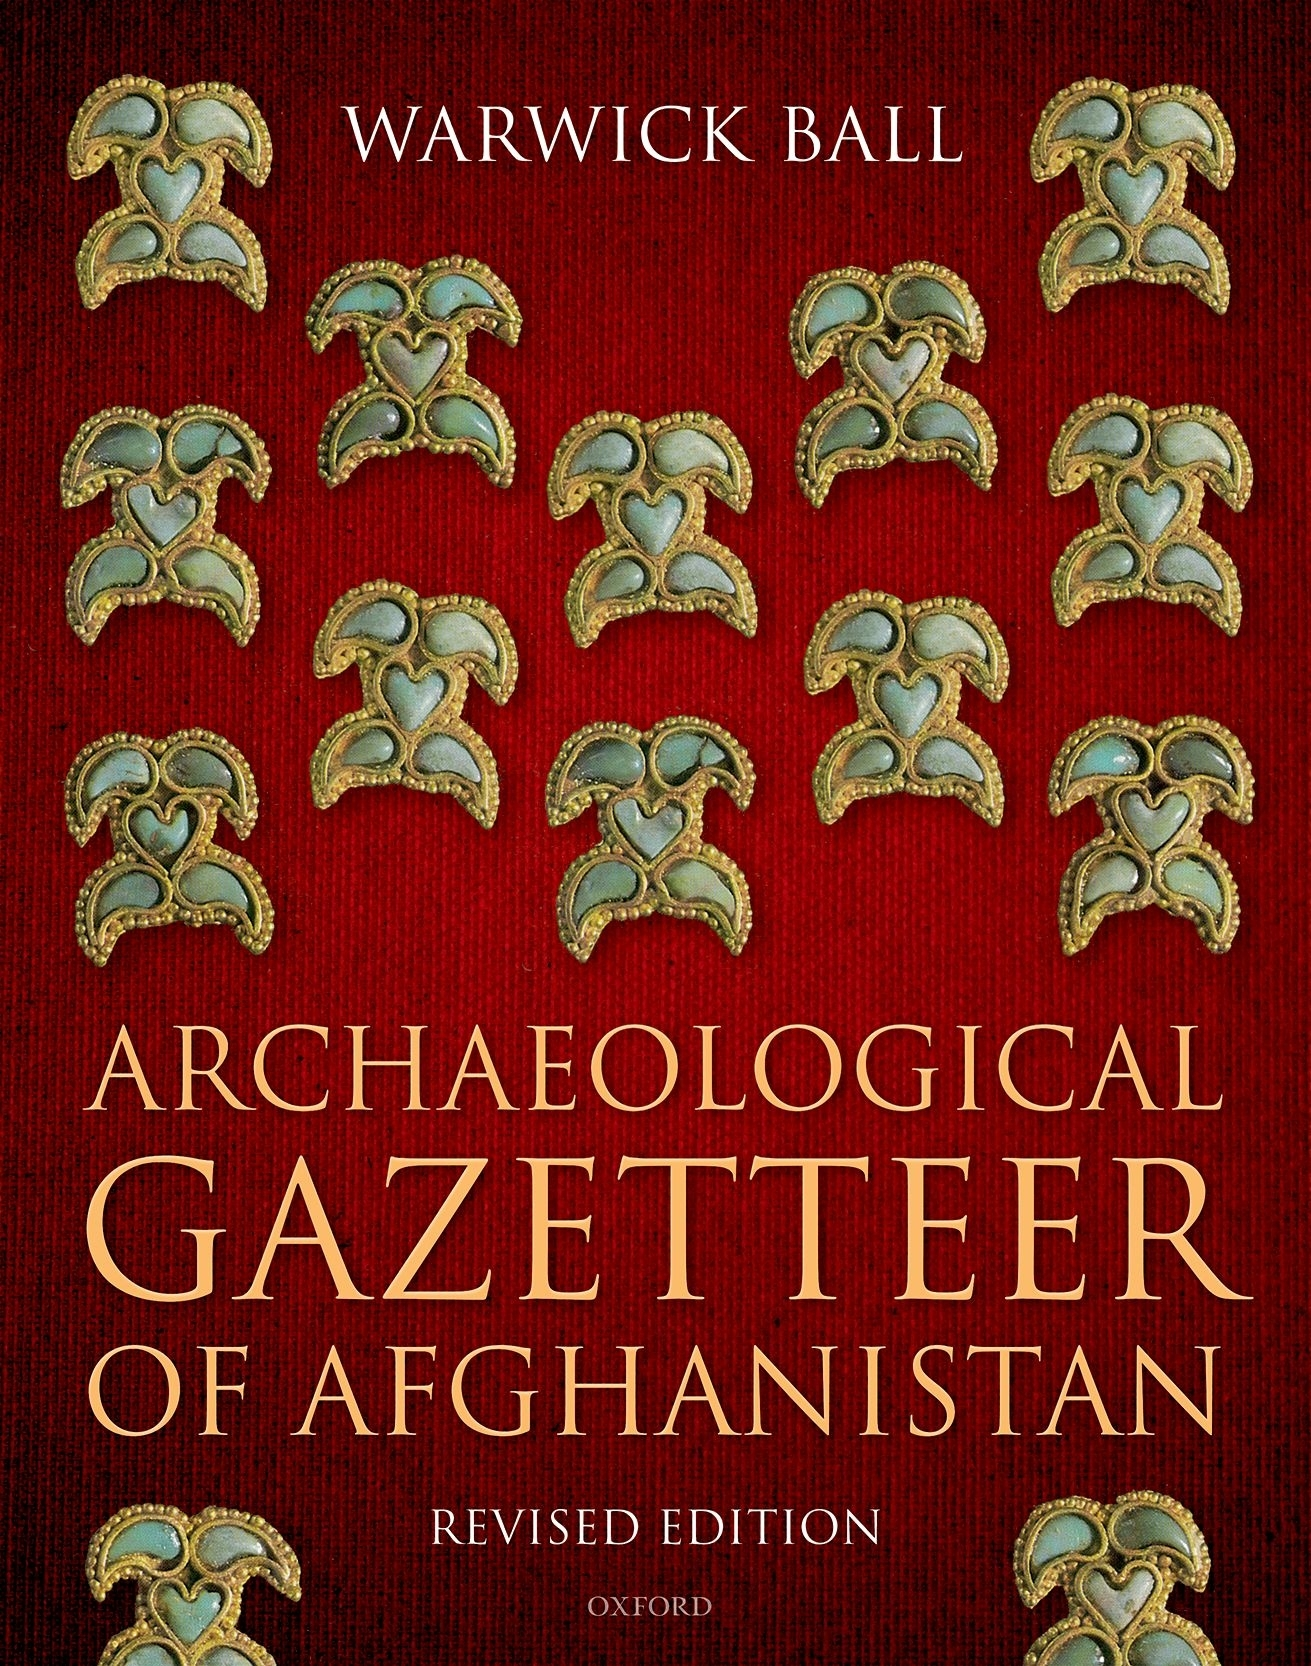 Archaeological Gazetteer of AfghanistanRevised Edition